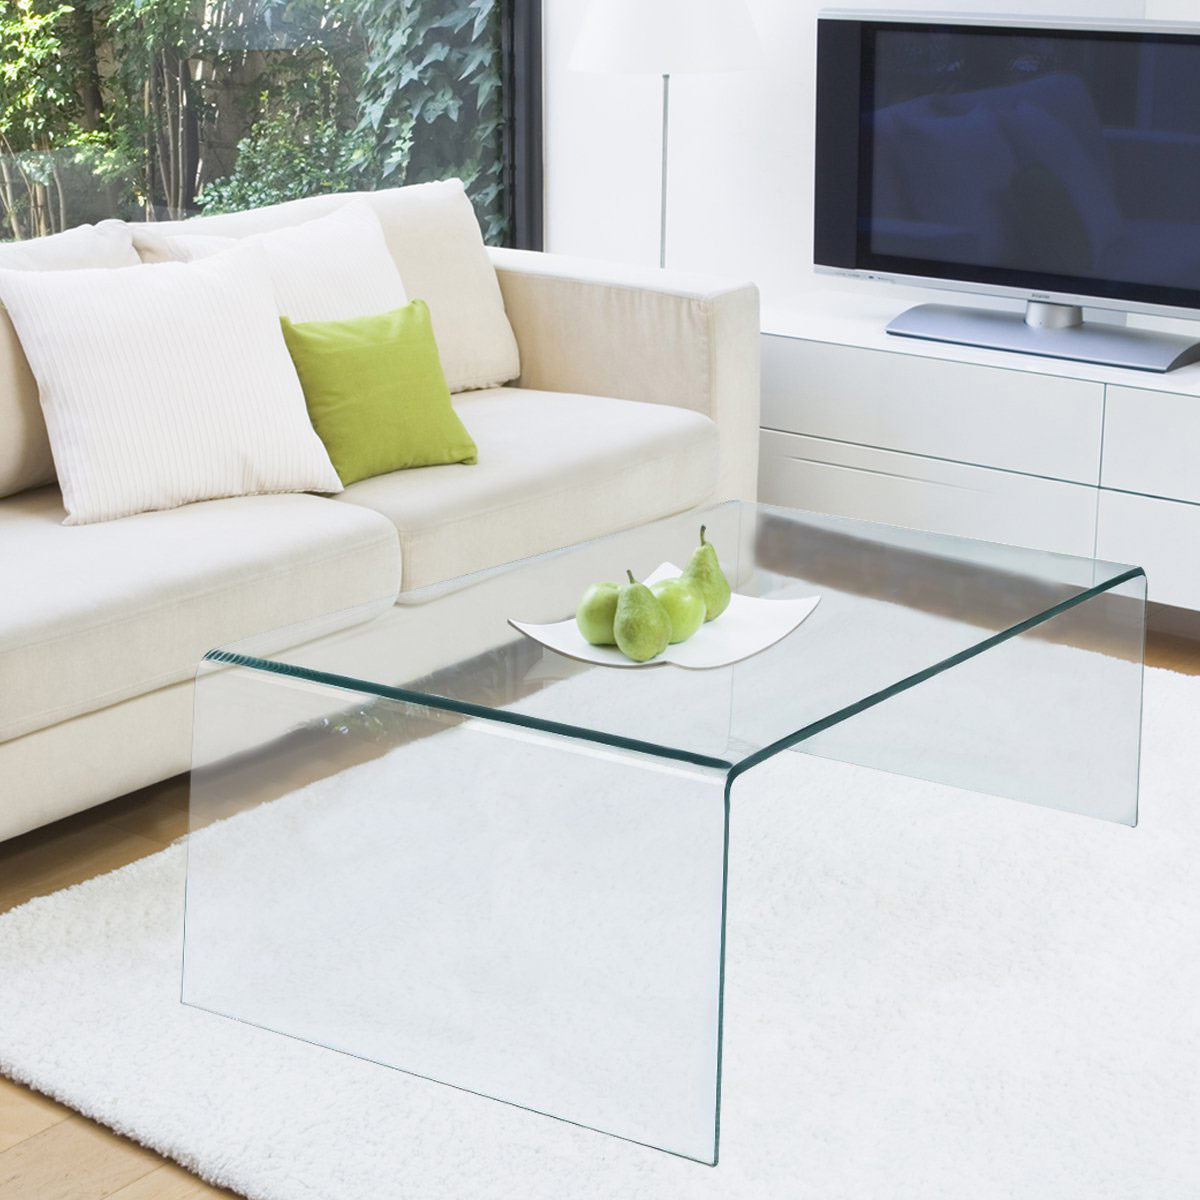 Trendy Contemporary Curves Coffee Tables Throughout The Best Glass Coffee Tables Under $200 (Gallery 11 of 20)